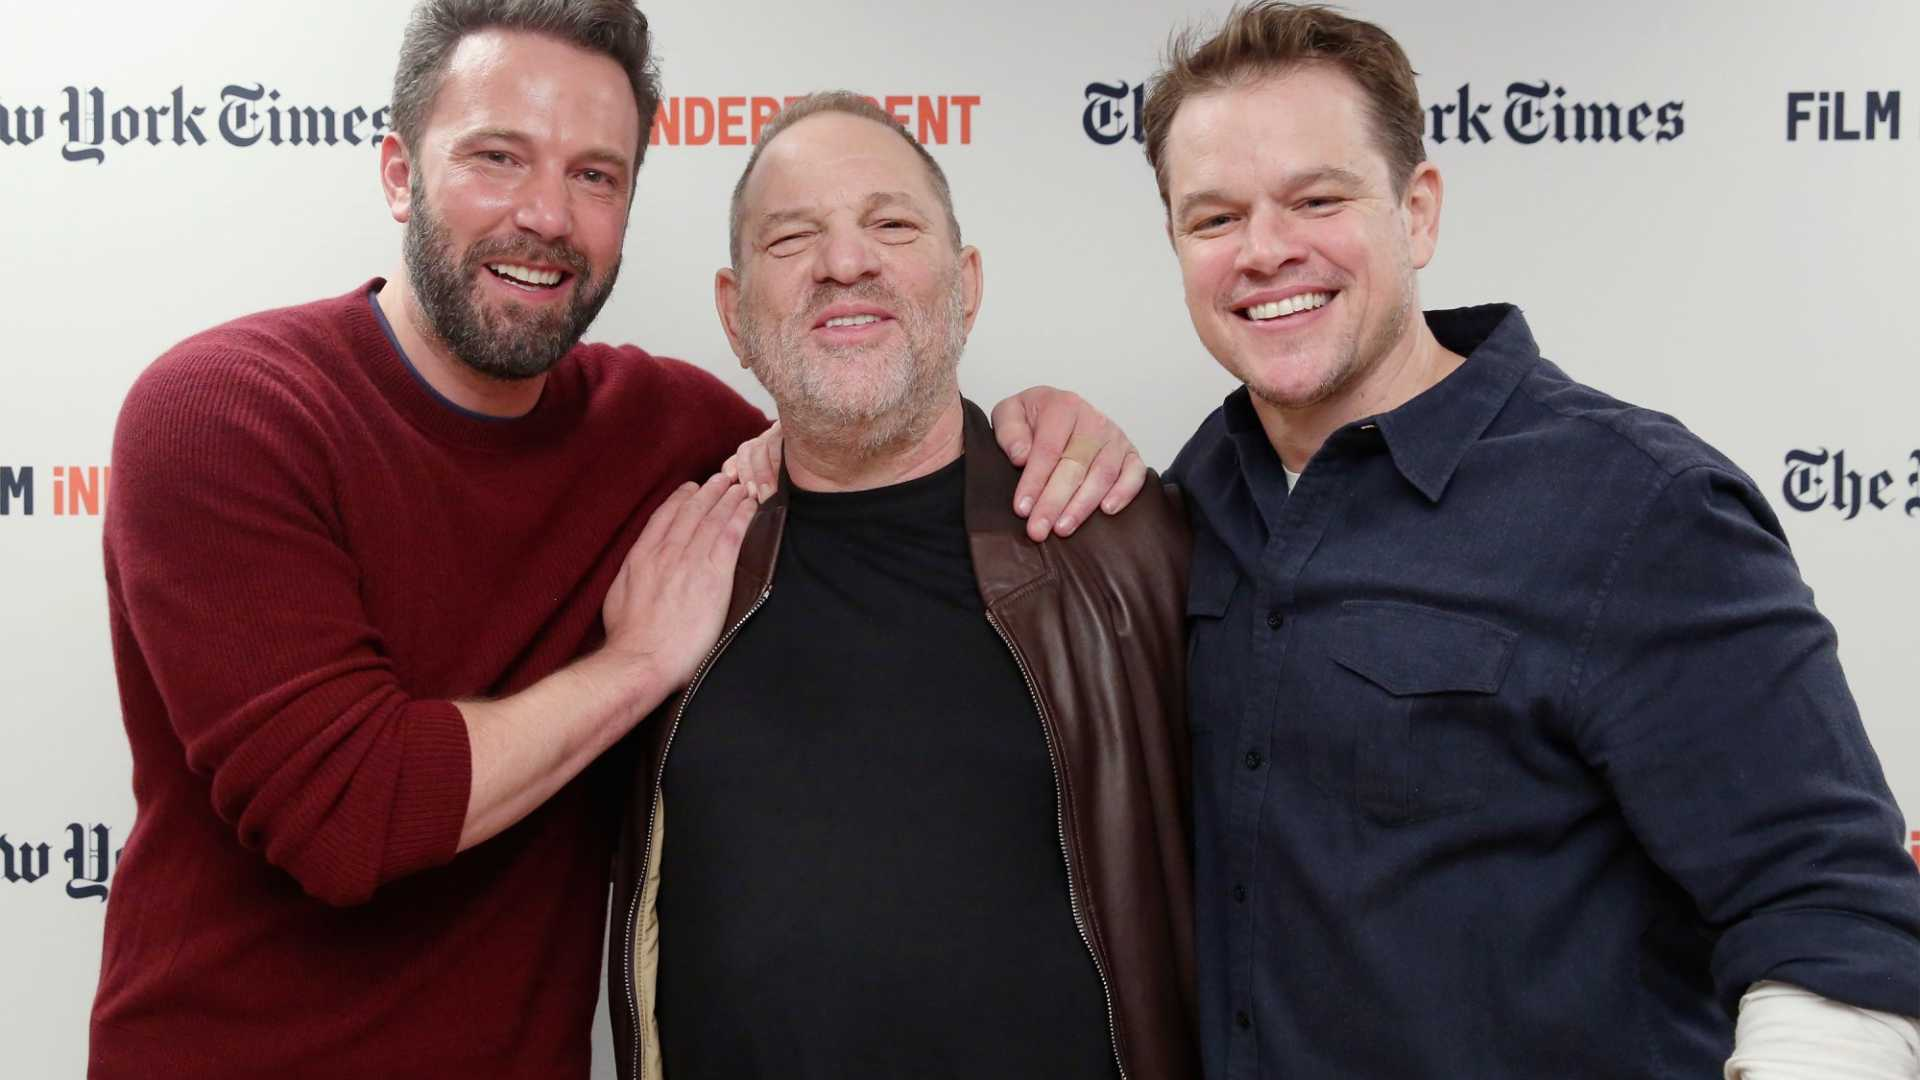 What Men Can Learn from Matt Damon